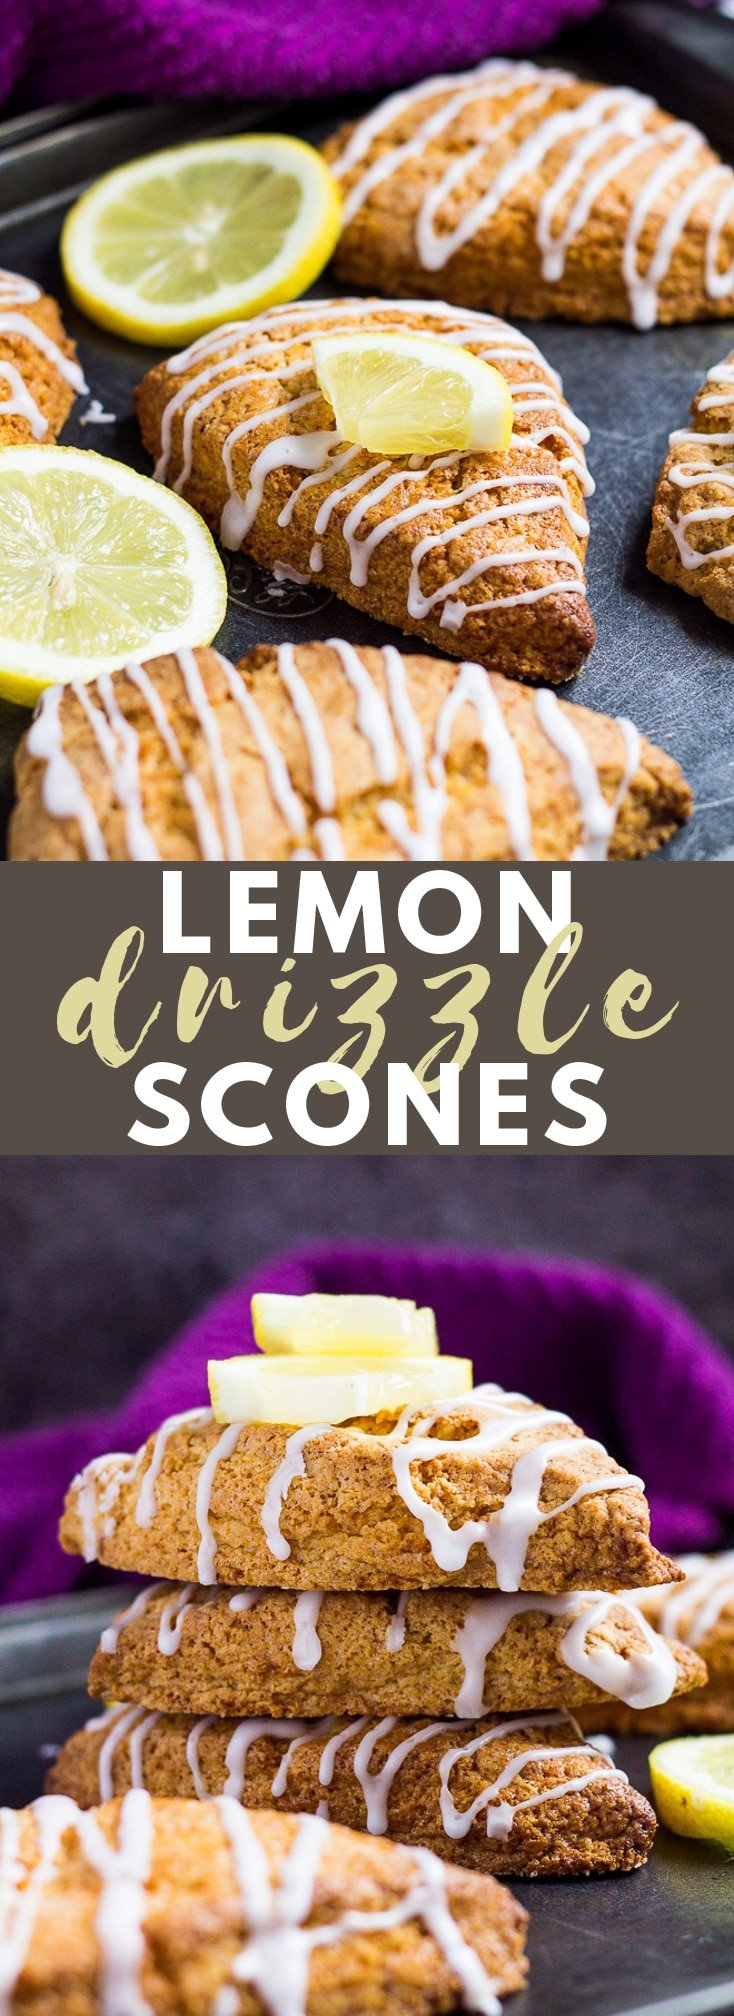 Lemon Drizzle Scones - These scones are deliciously soft and fluffy on the inside and crispy on the outside, infused with lemon and drizzled with a sweet lemon glaze! #lemon #scones #bread #recipe